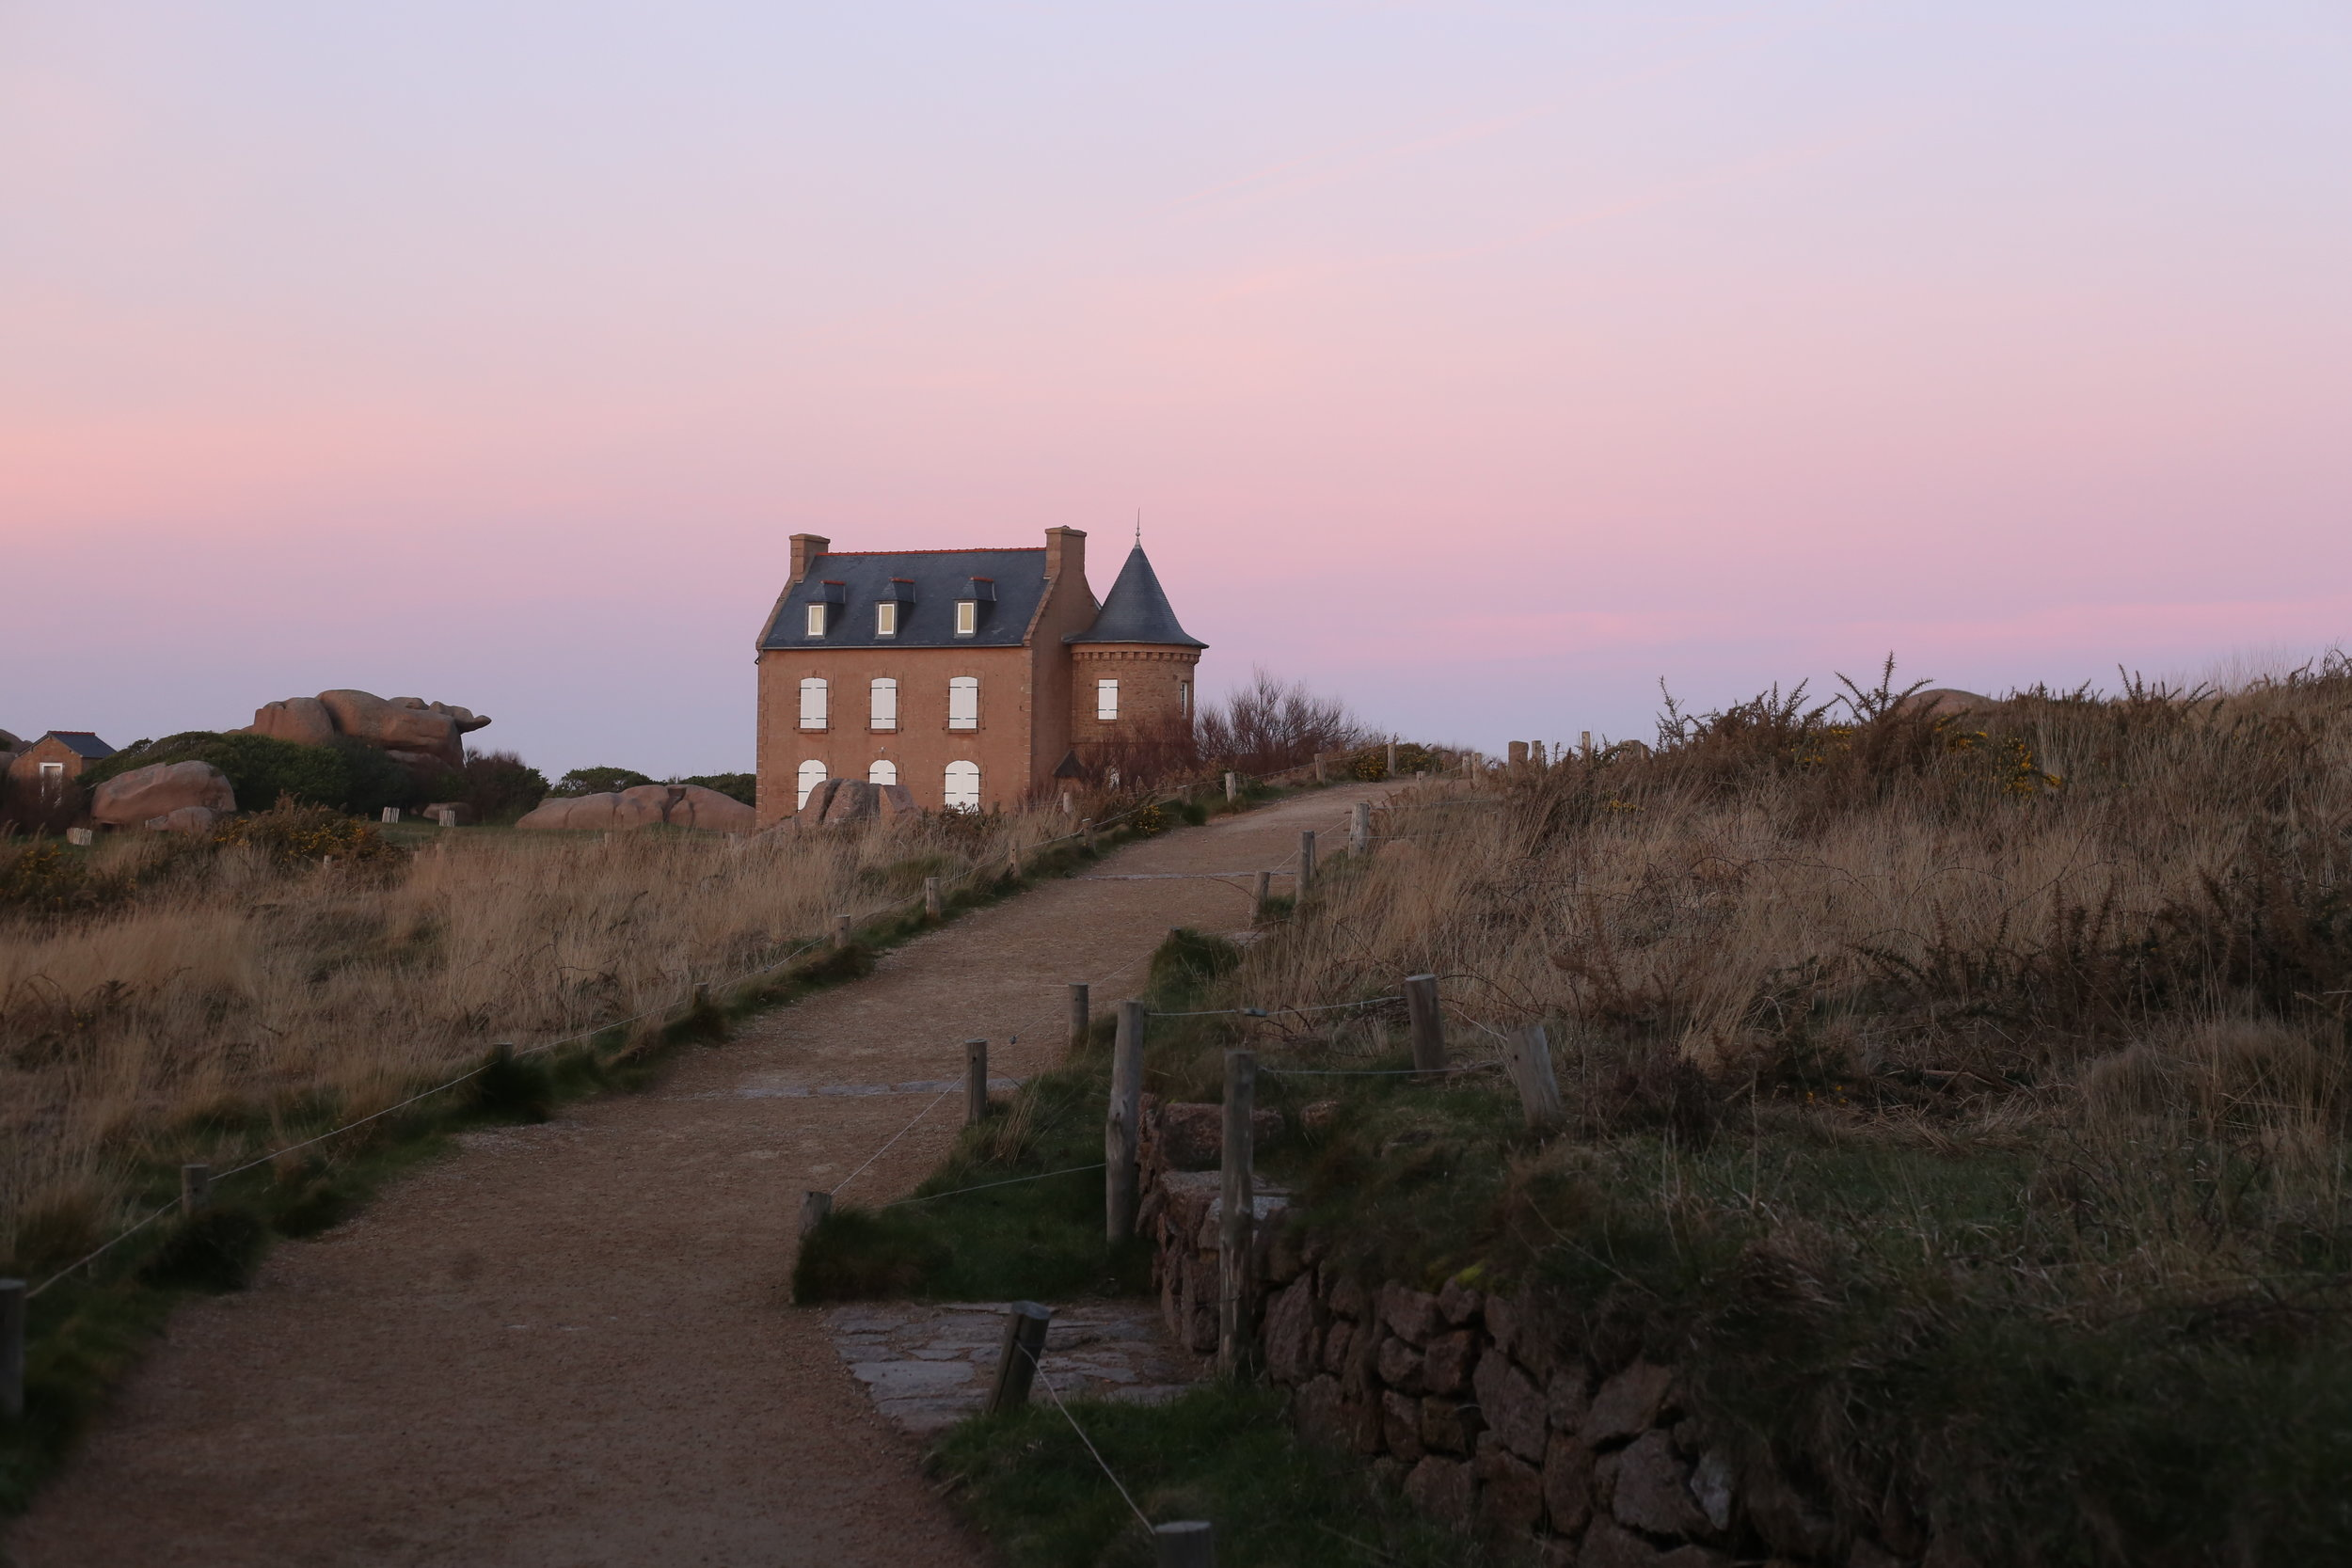 Purple skies over a manor house, on the coast of Brittany.